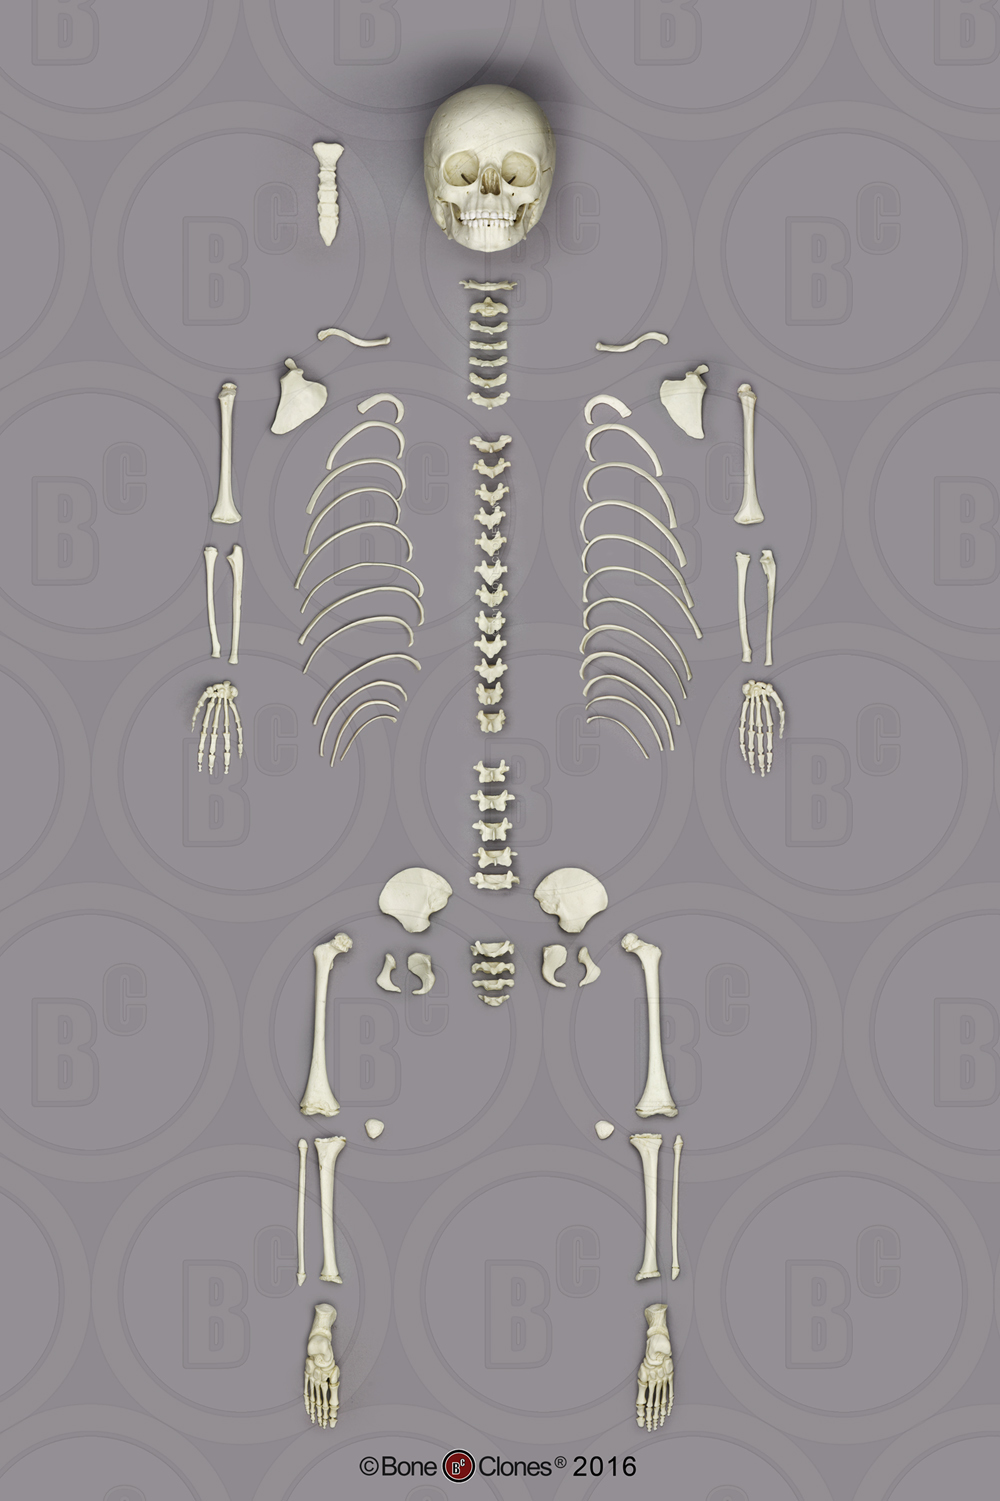 disarticulated human skeletons - bone clones, inc. - osteological, Skeleton